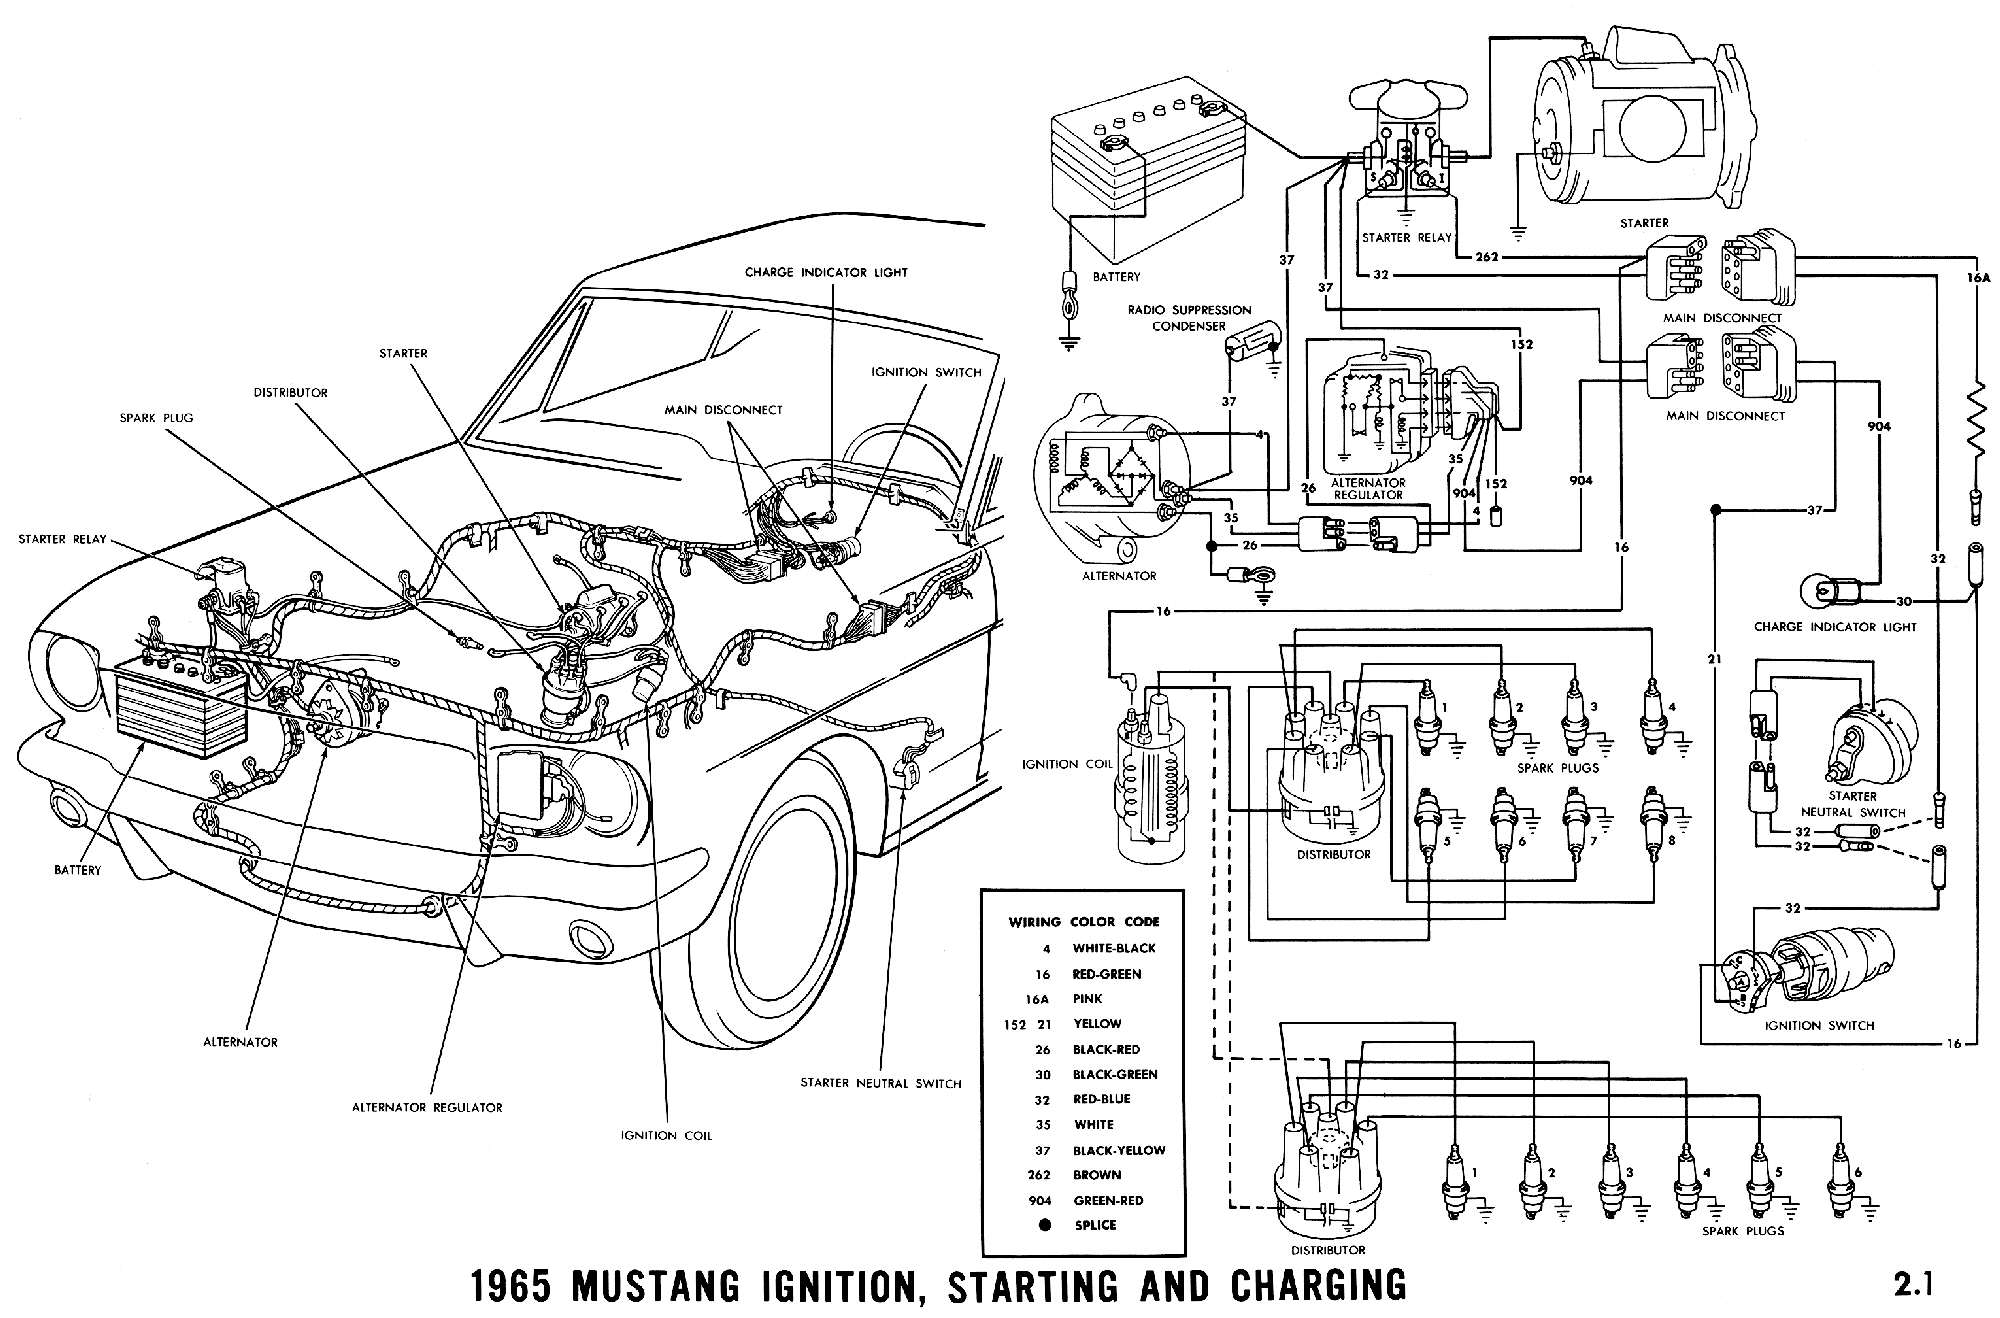 1965c 1965 mustang wiring diagrams average joe restoration au falcon engine wiring diagram at bakdesigns.co